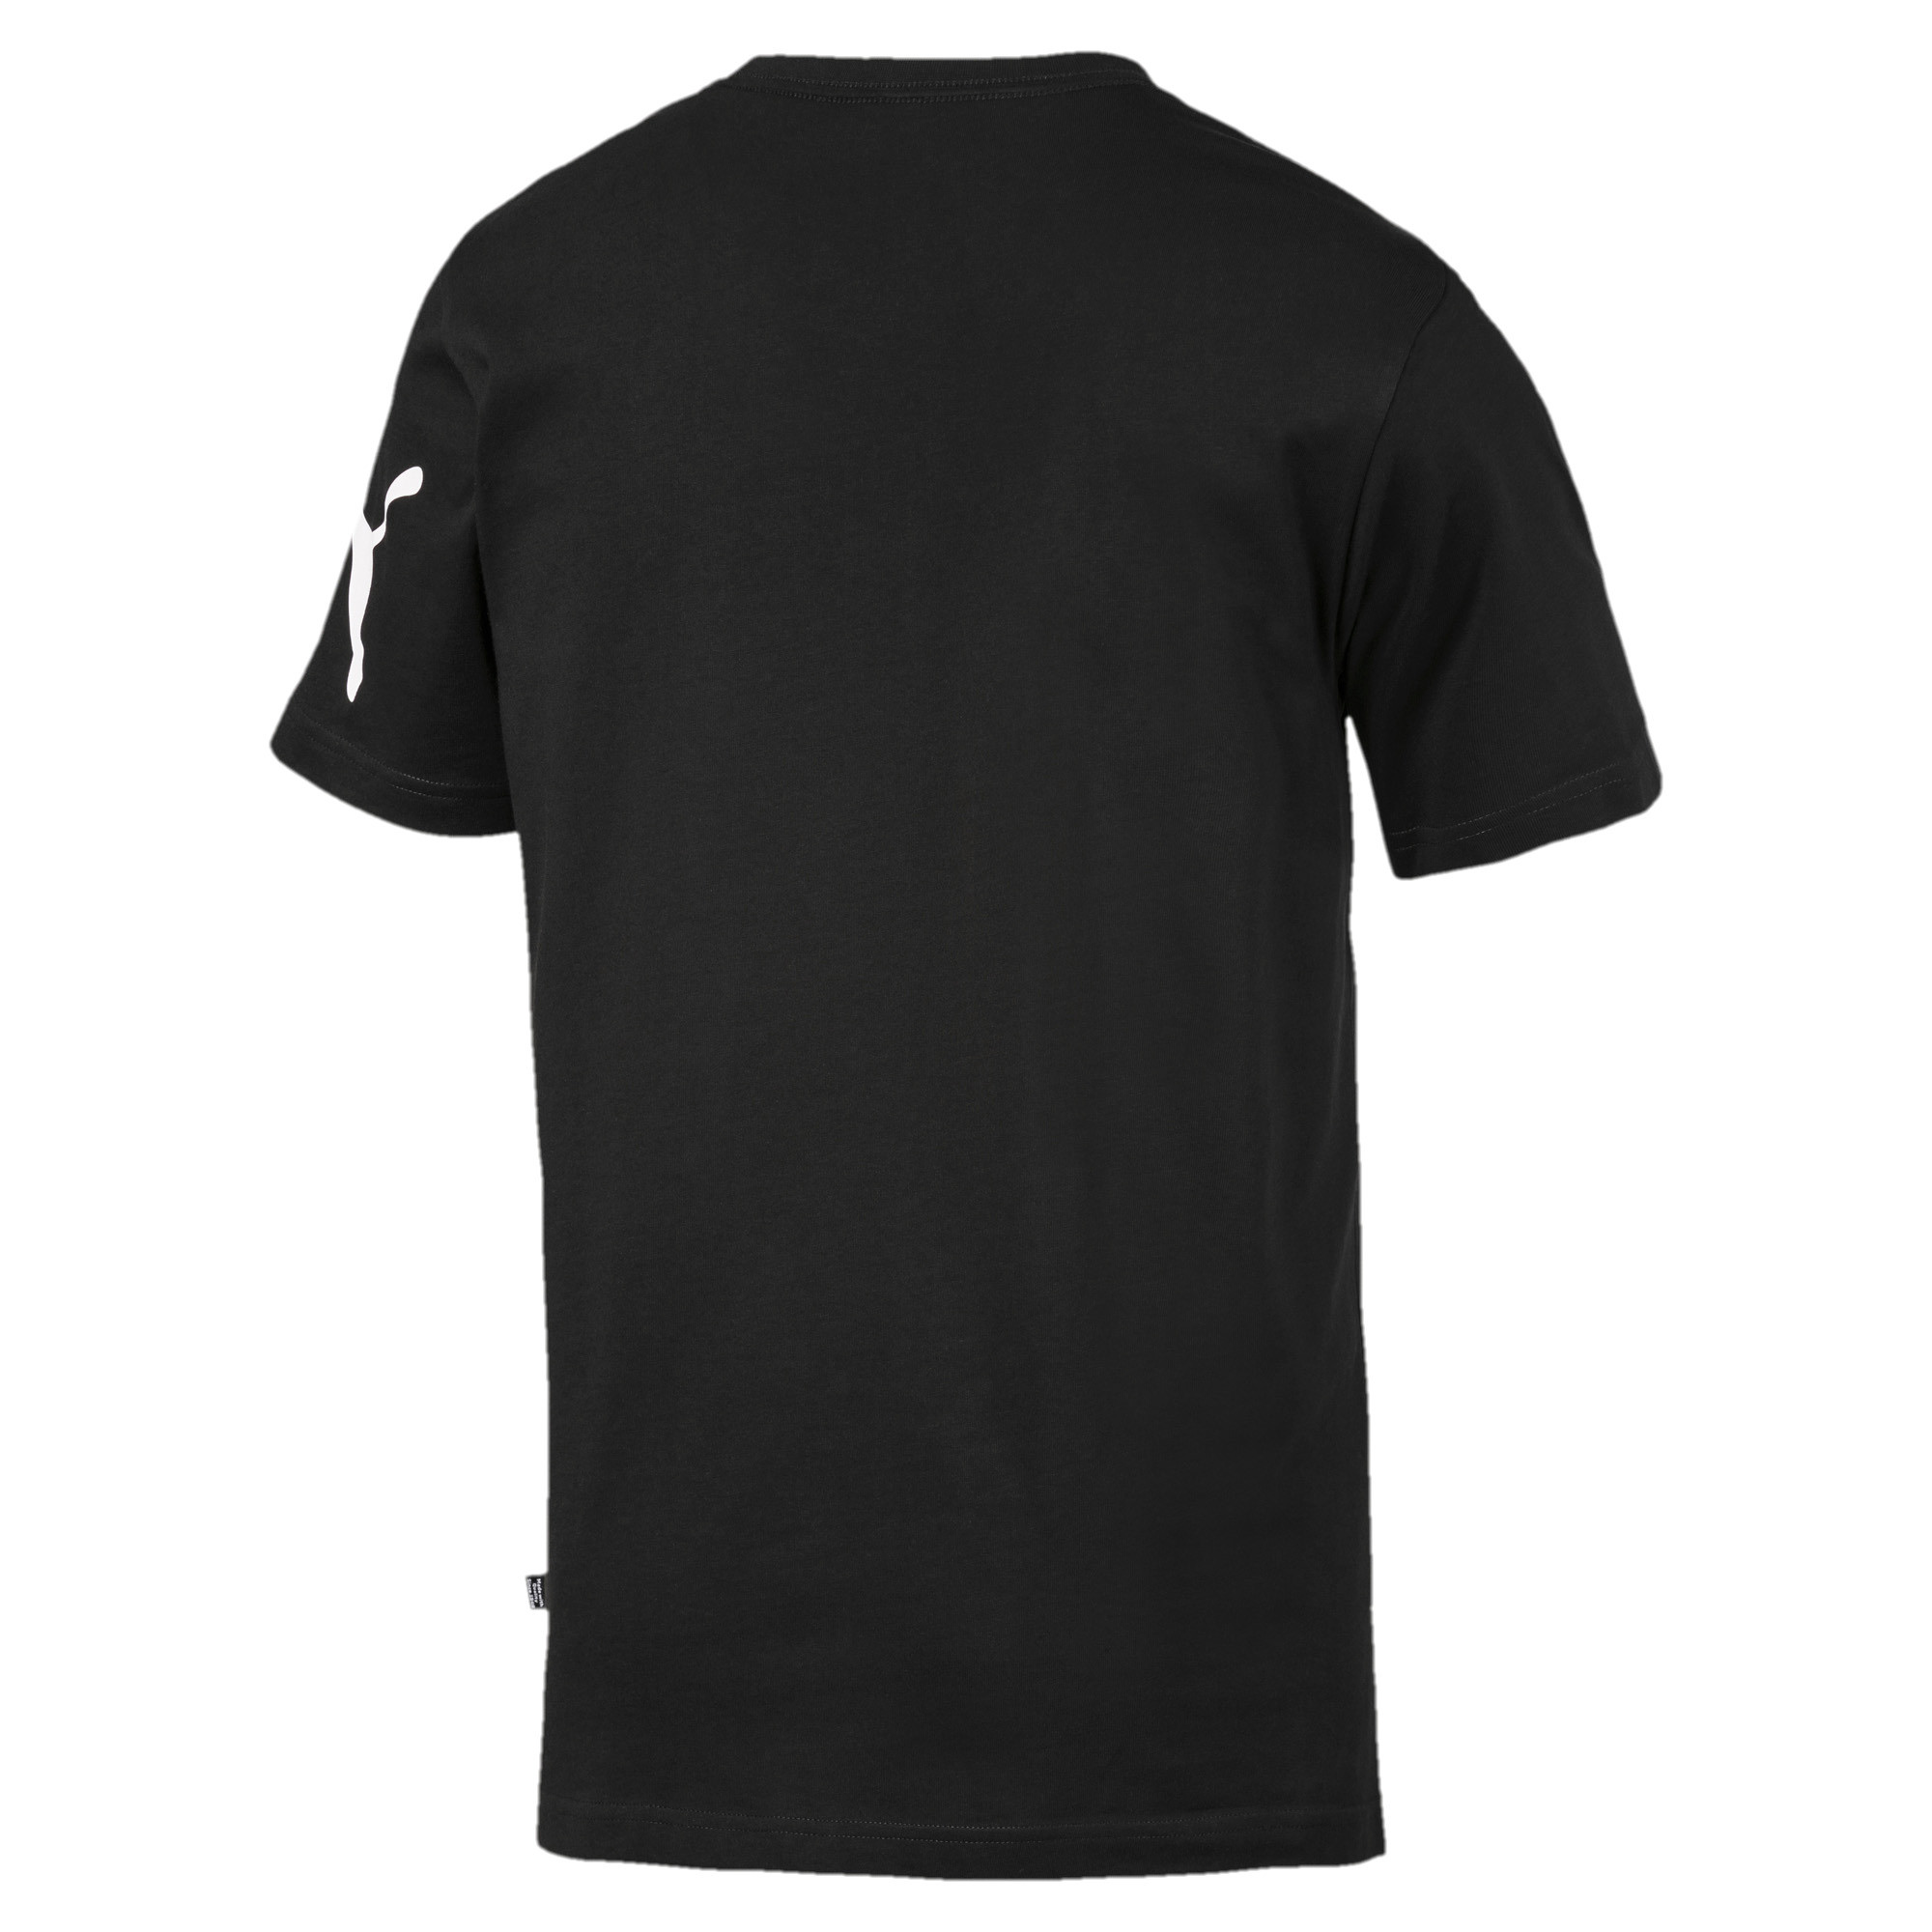 PUMA-Big-Logo-Men-039-s-Tee-Men-Tee-Basics thumbnail 9